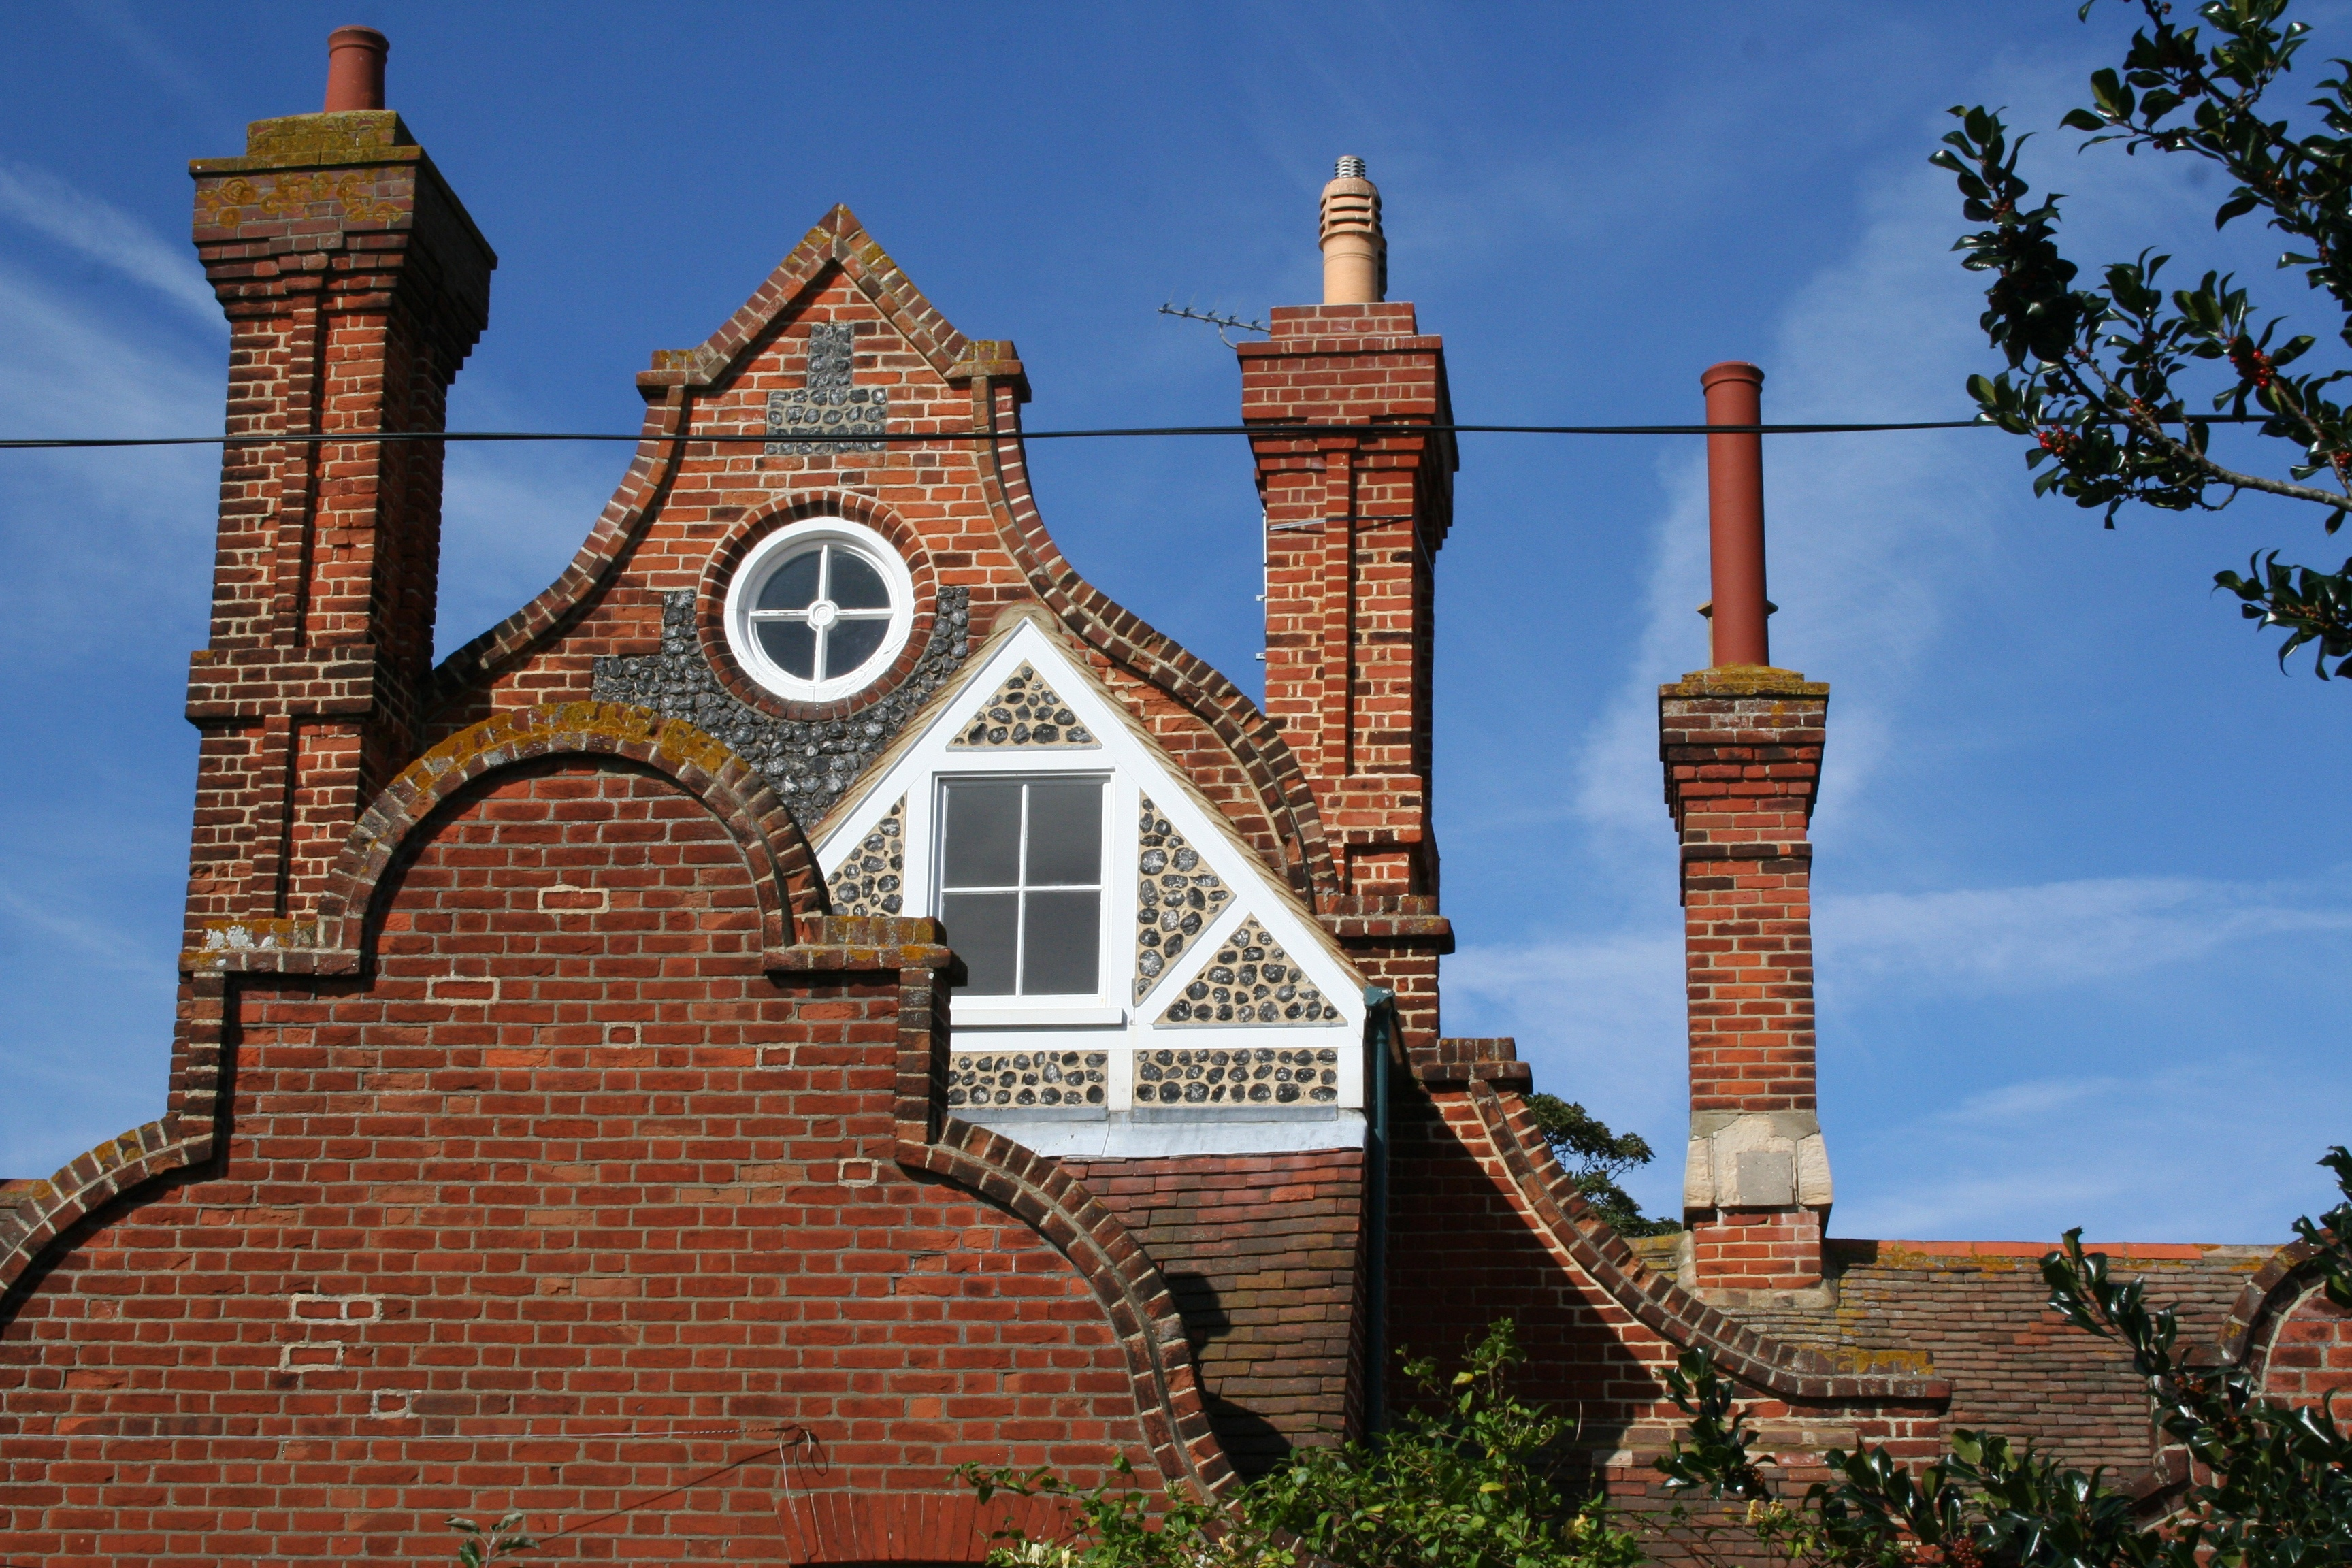 DRAPERS-CHIMNEYS-4-3456x2304.jpg